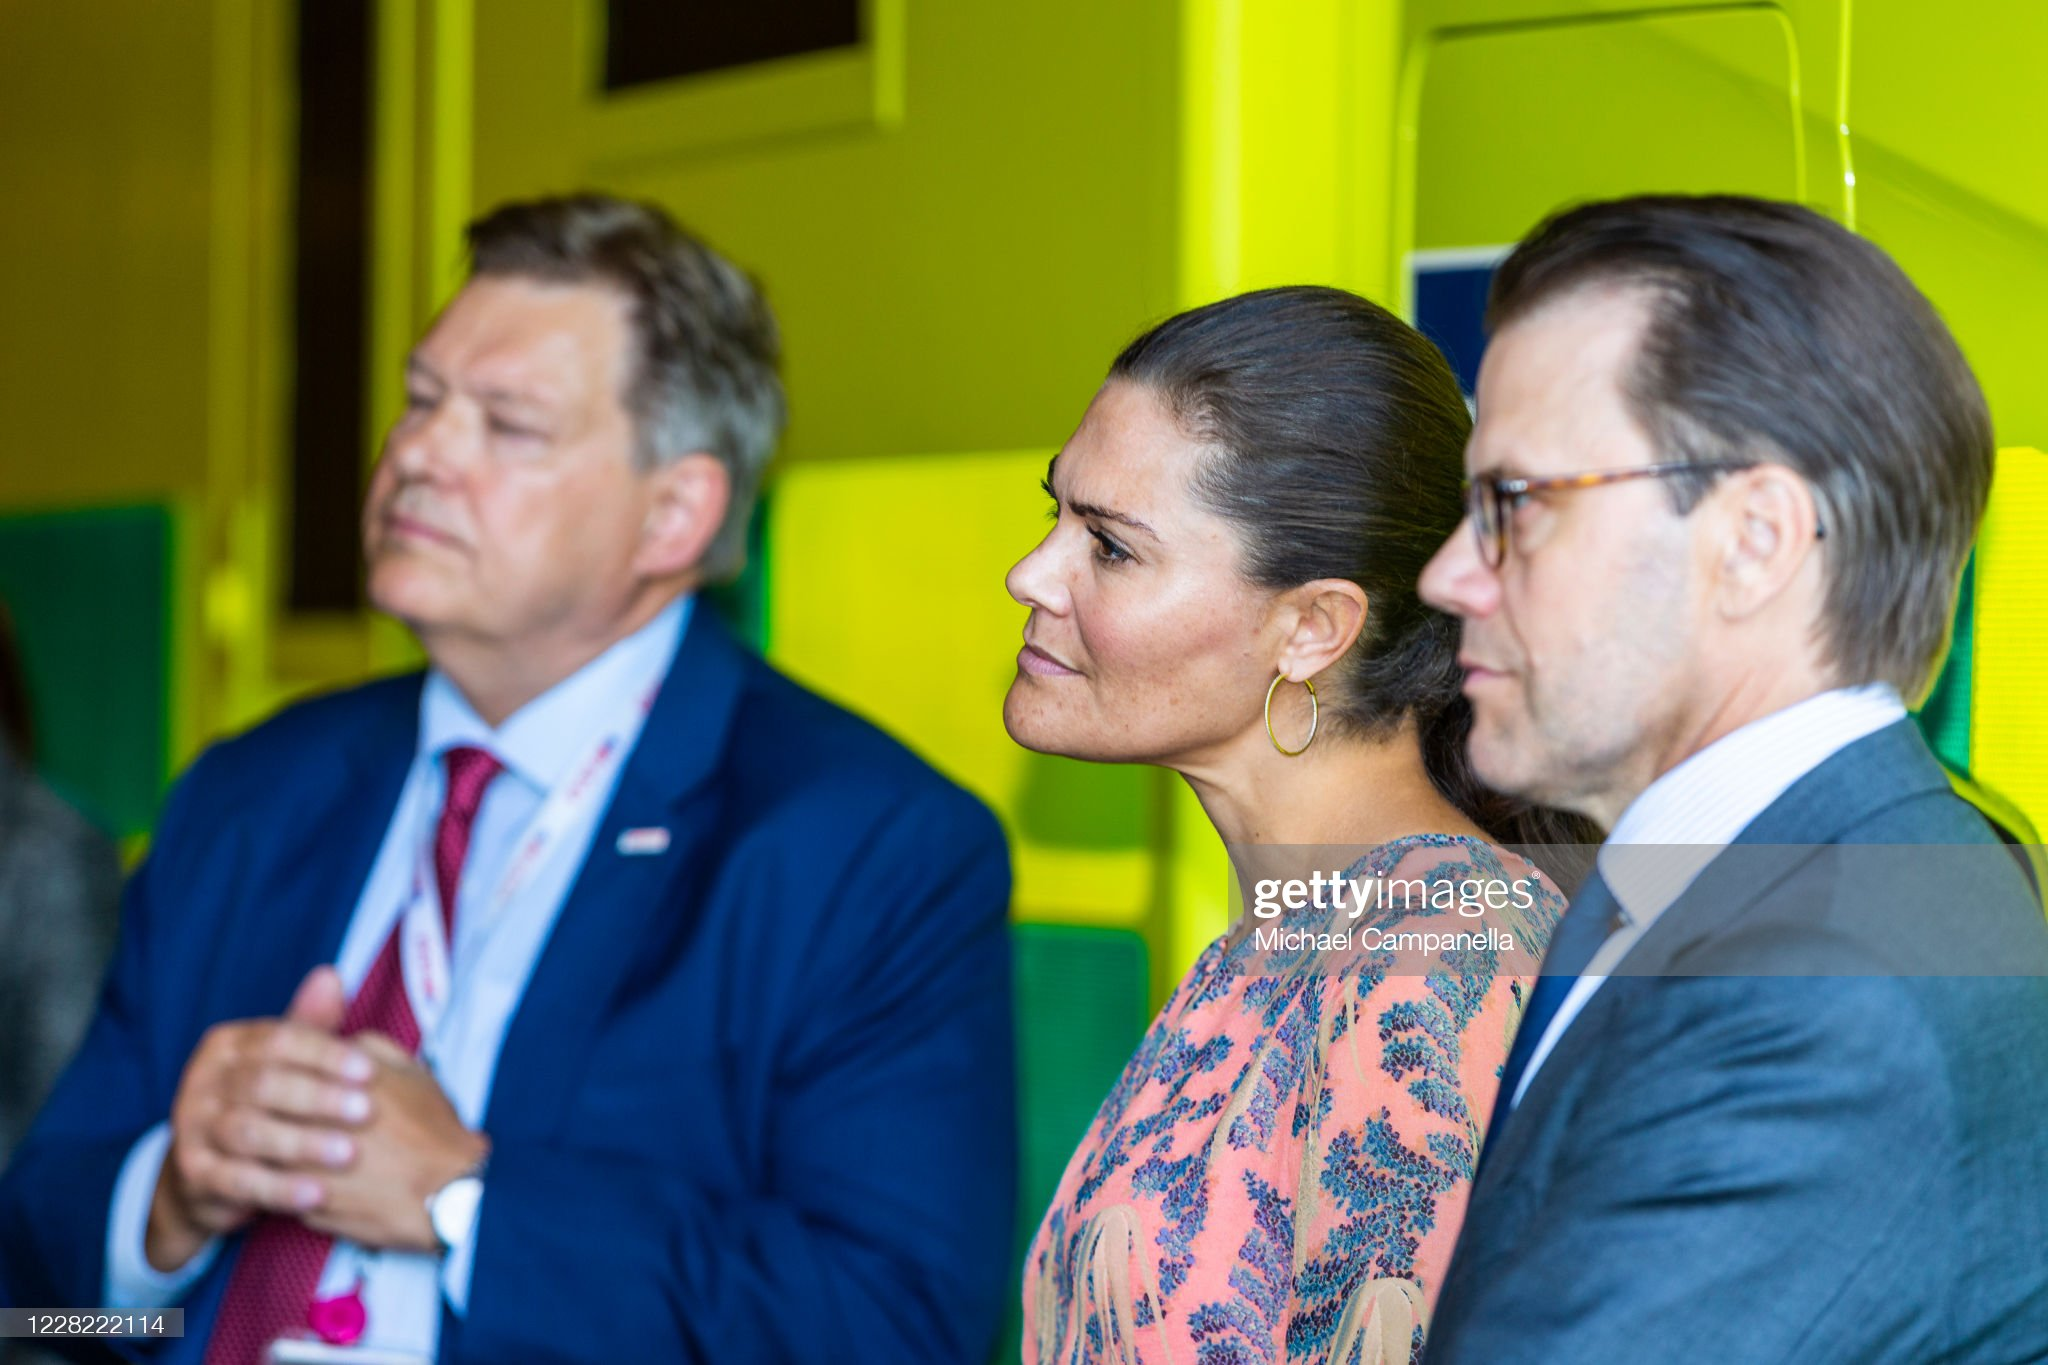 crown-princess-victoria-and-prince-daniel-of-sweden-visit-an-station-picture-id1228222114